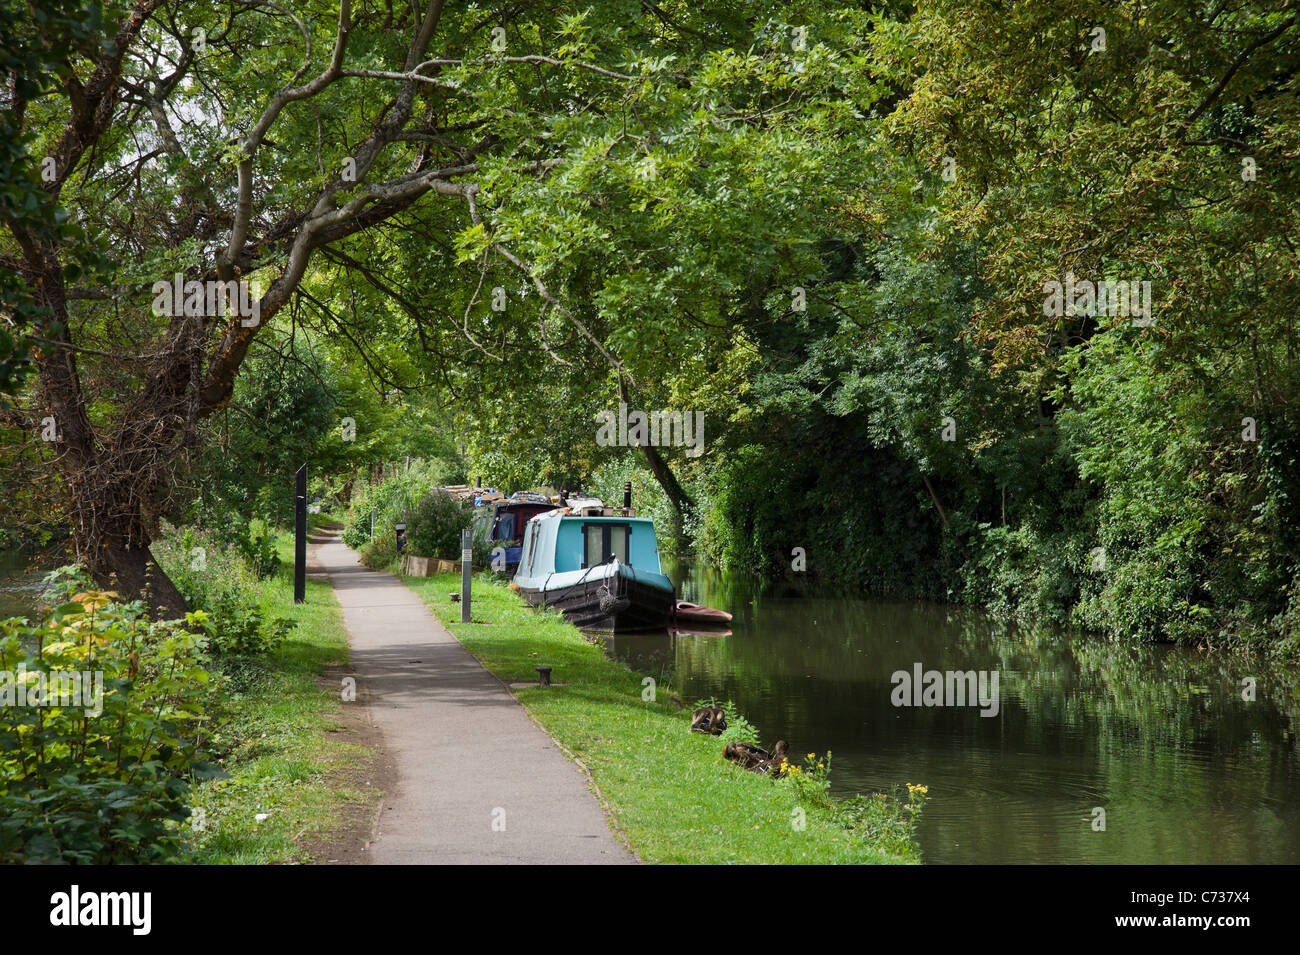 Path alongside the Oxford Canal near the city centre, Oxford, Oxfordshire, England, UK - Stock Image